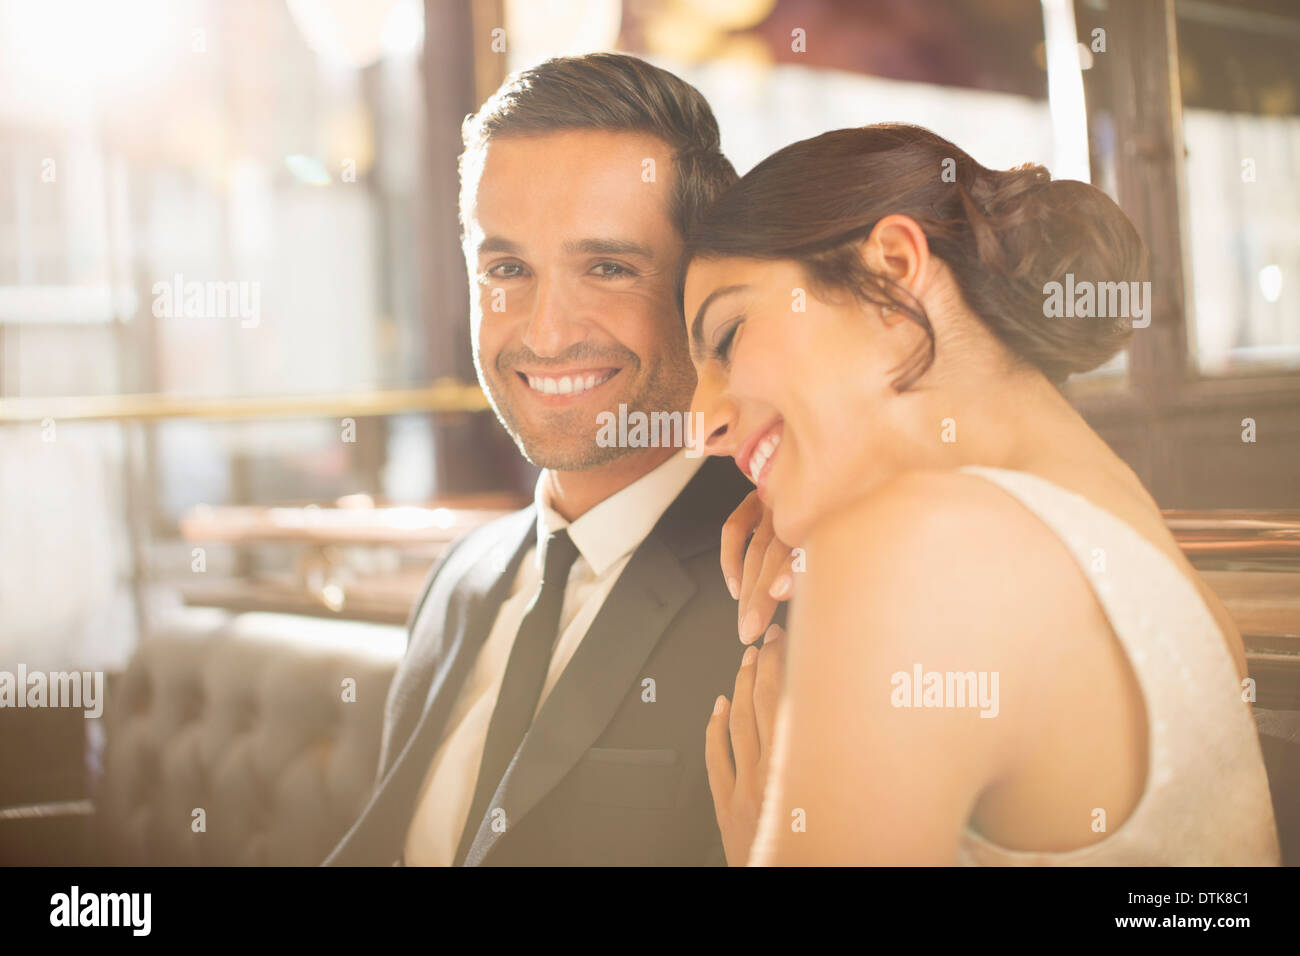 Well-dressed couple hugging in restaurant - Stock Image